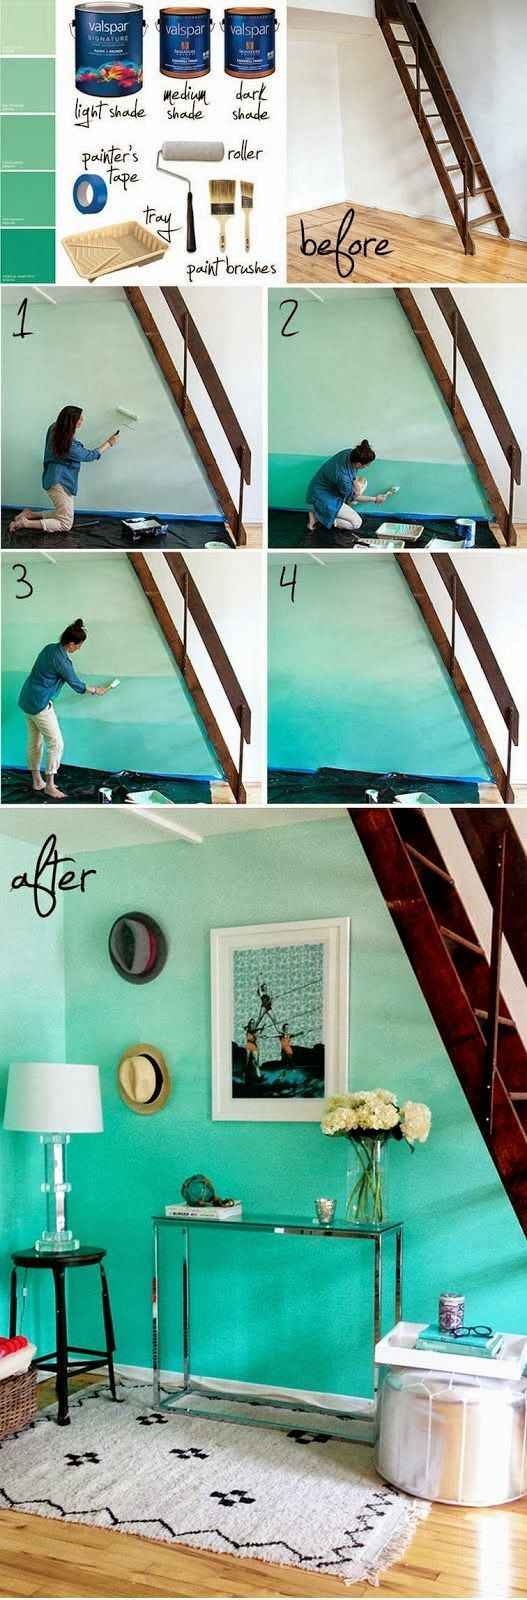 Best 25 sea theme bathroom ideas on pinterest seashell for Easy wall painting techniques